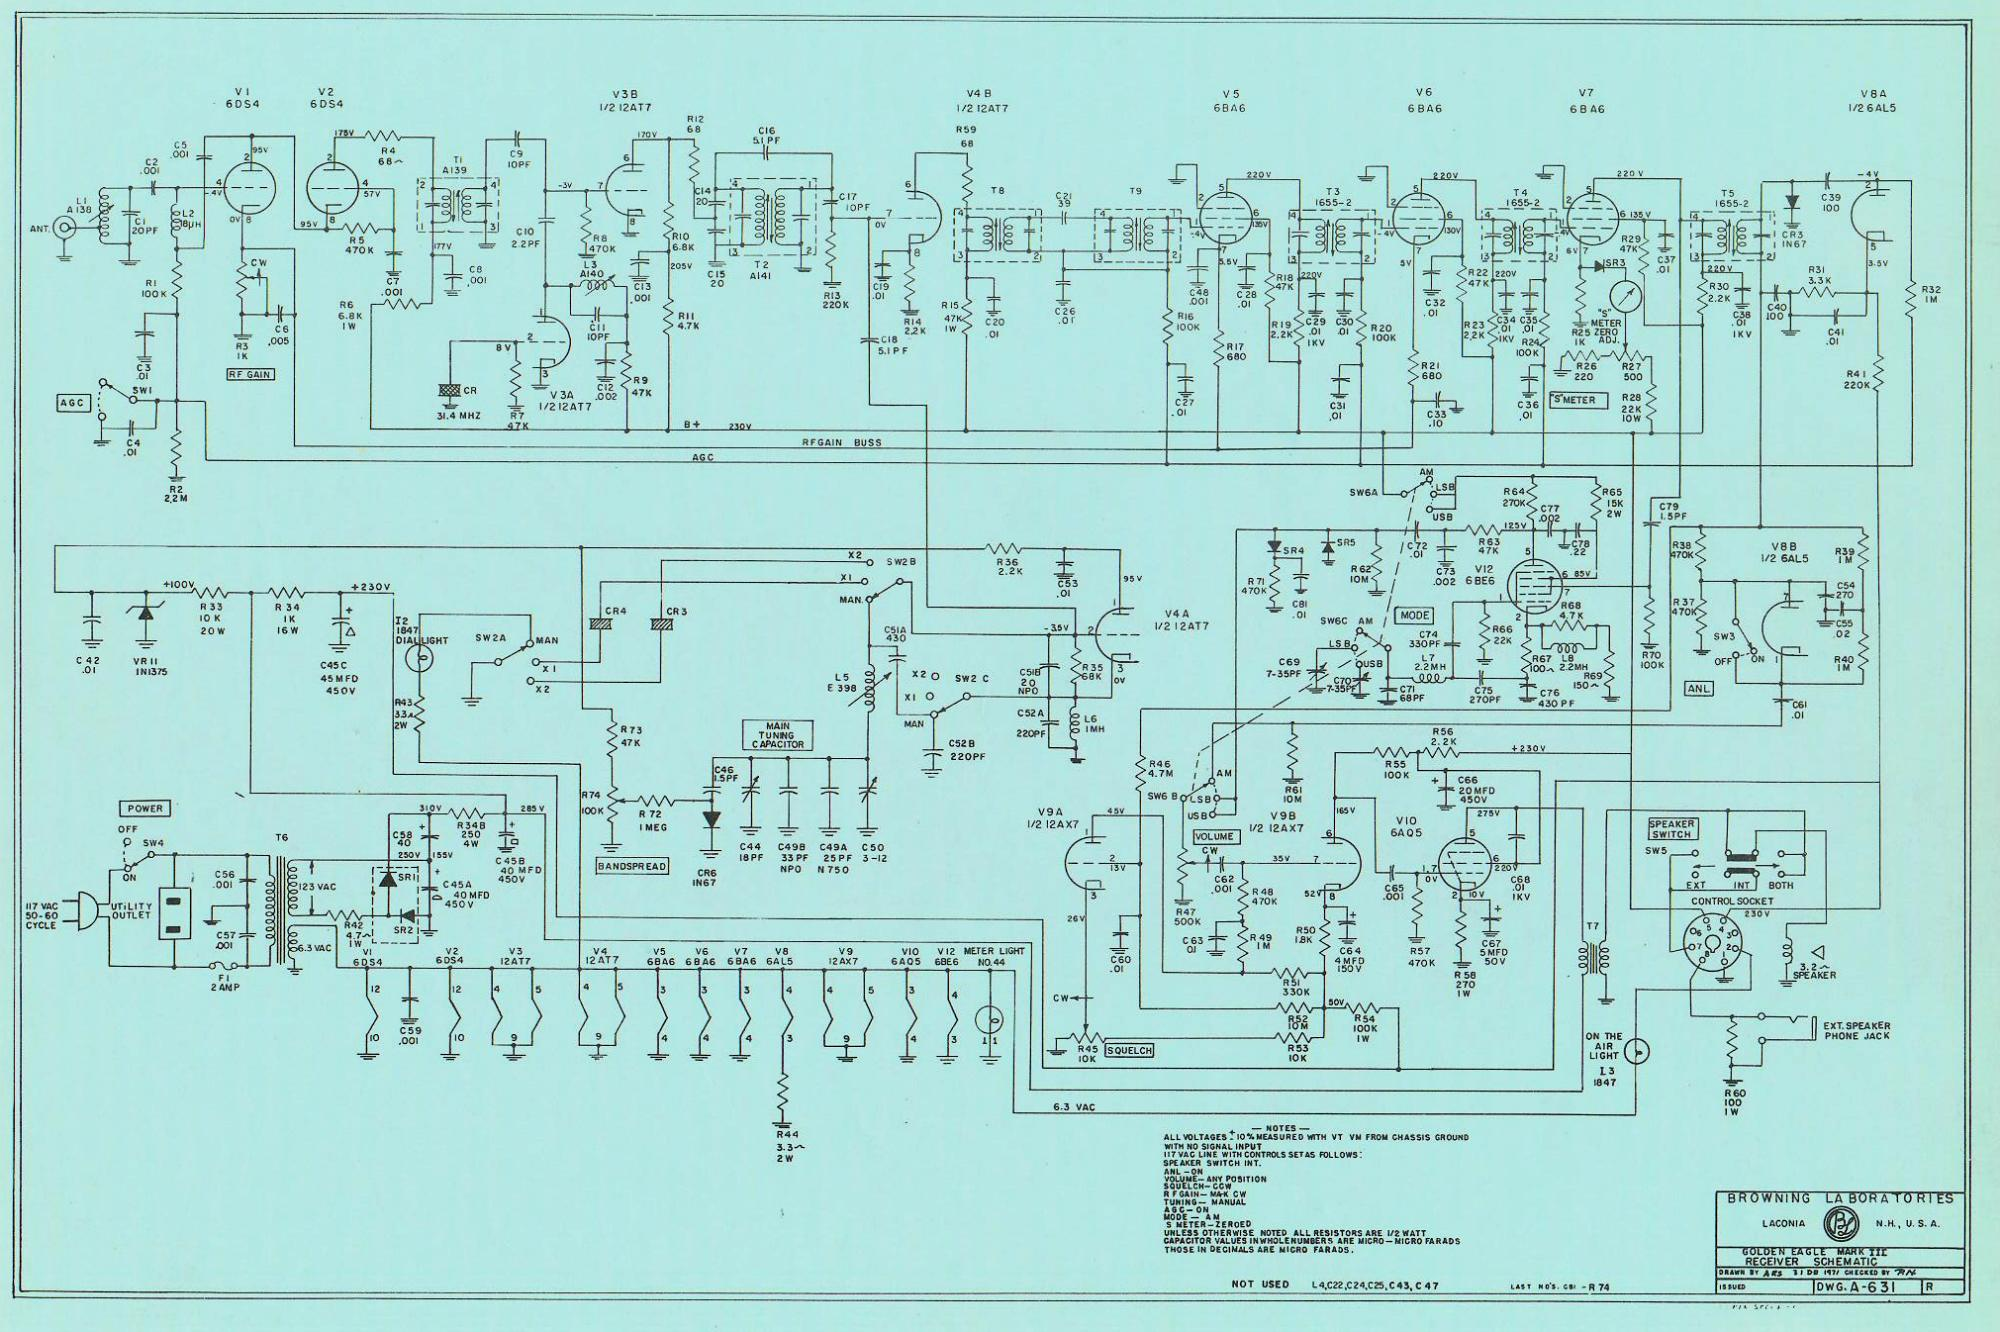 Service Manual · Channel Expansion. DIAGRAMS Transmiter Schematic